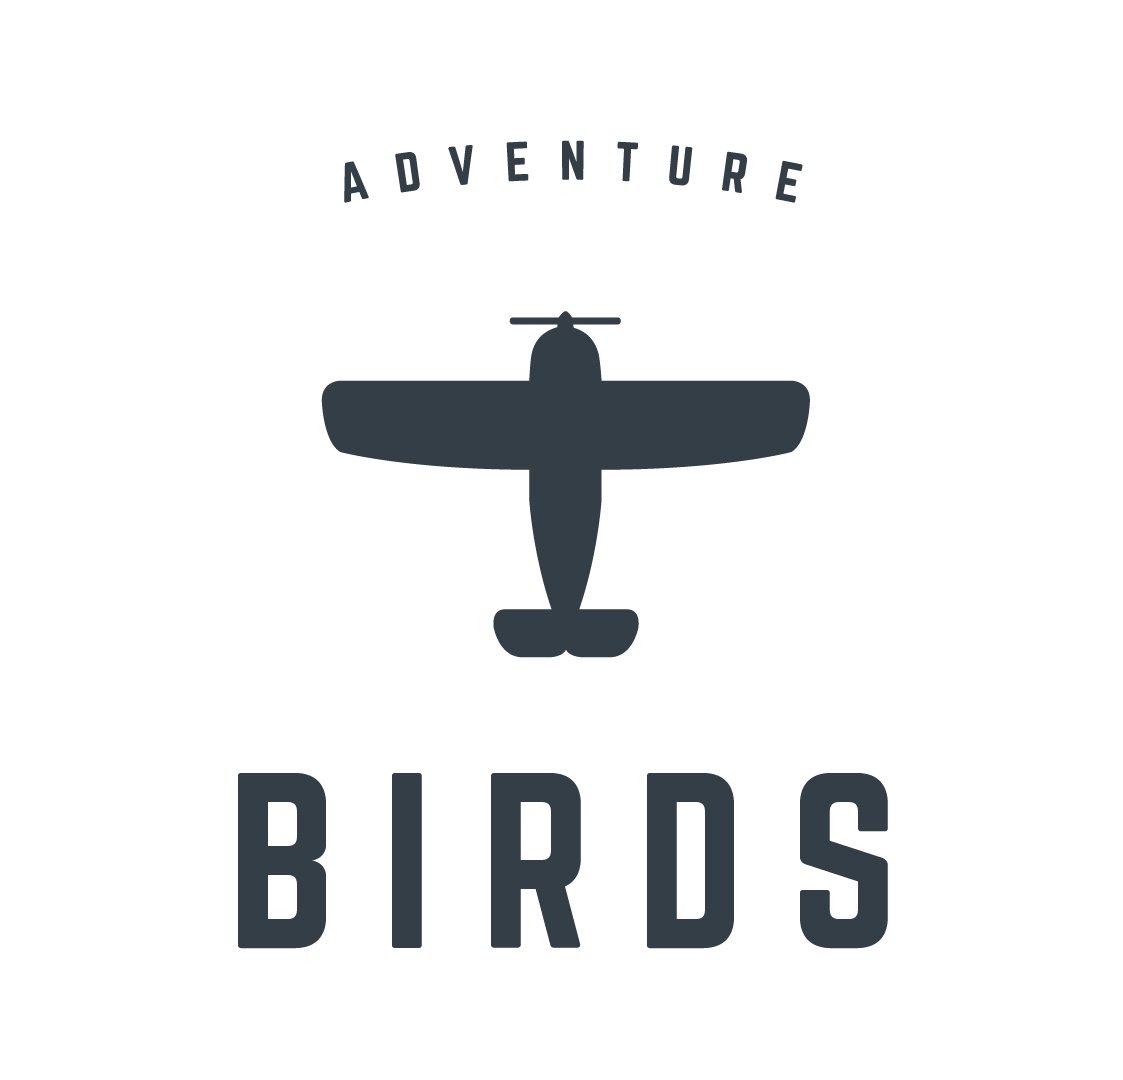 BIRDS Adventure | Gin & Wine For Adventurers